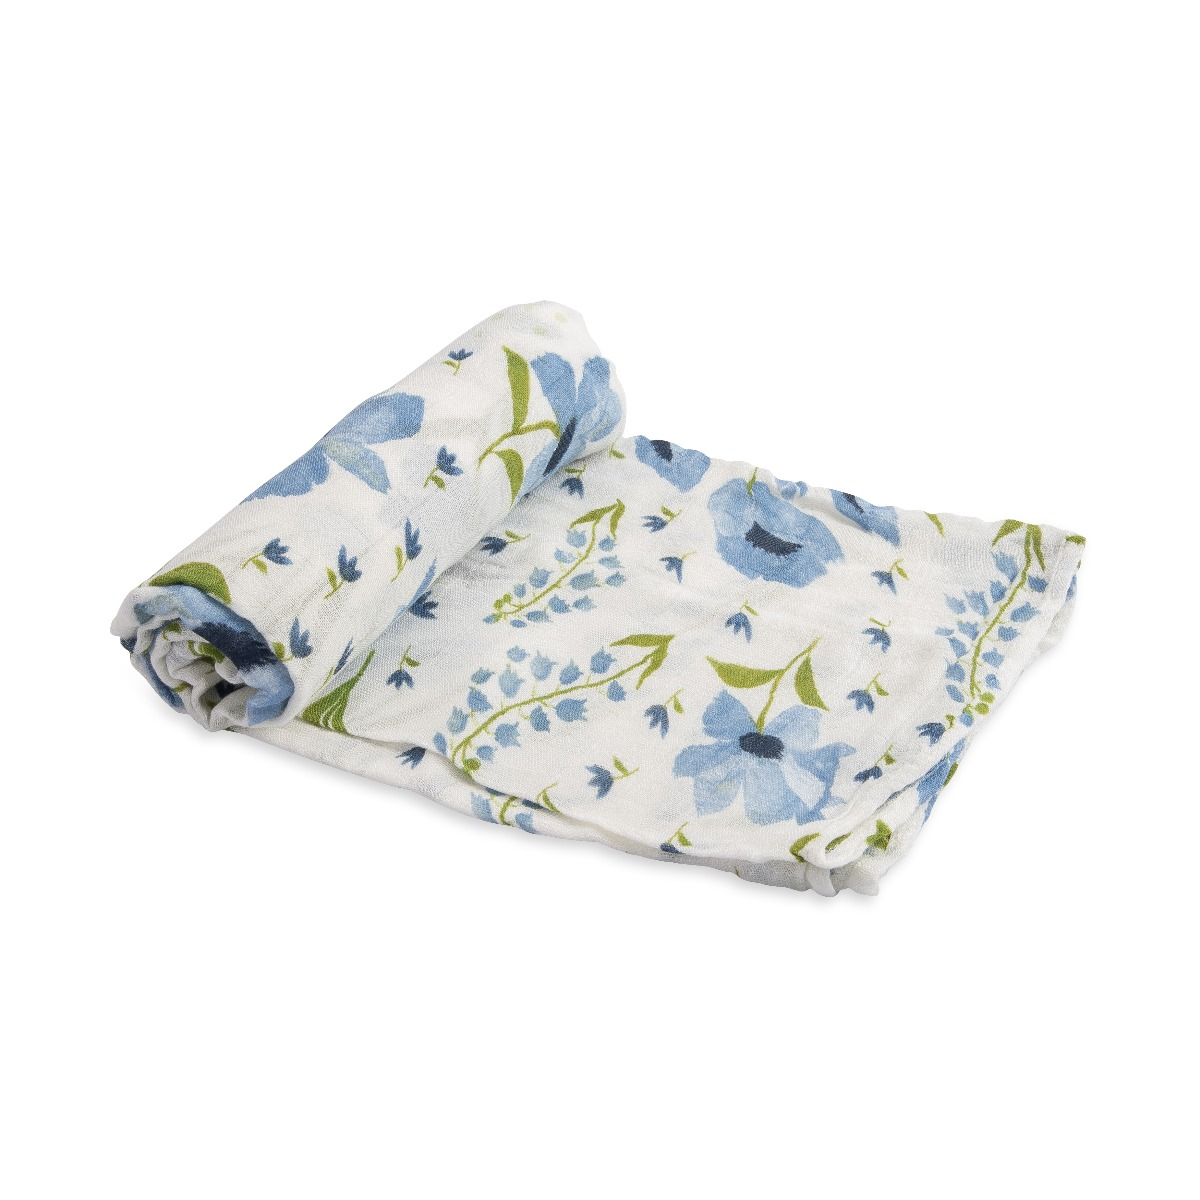 Llittle Unicorn Deluxe Swaddle Blue Windflower